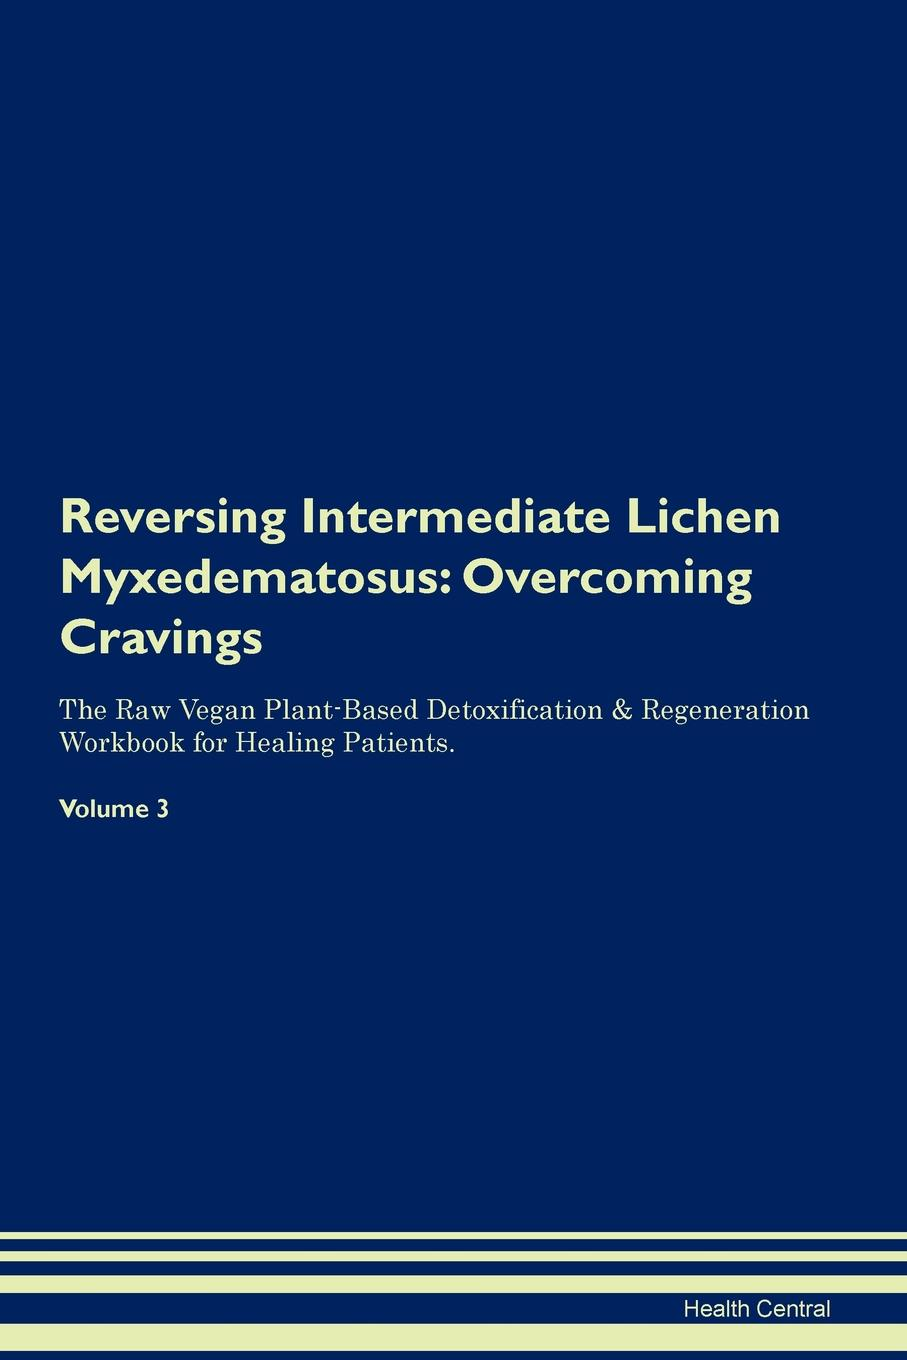 Фото - Health Central Reversing Intermediate Lichen Myxedematosus. Overcoming Cravings The Raw Vegan Plant-Based Detoxification & Regeneration Workbook for Healing Patients. Volume 3 health central reversing lichen sclerosus overcoming cravings the raw vegan plant based detoxification regeneration workbook for healing patients volume 3